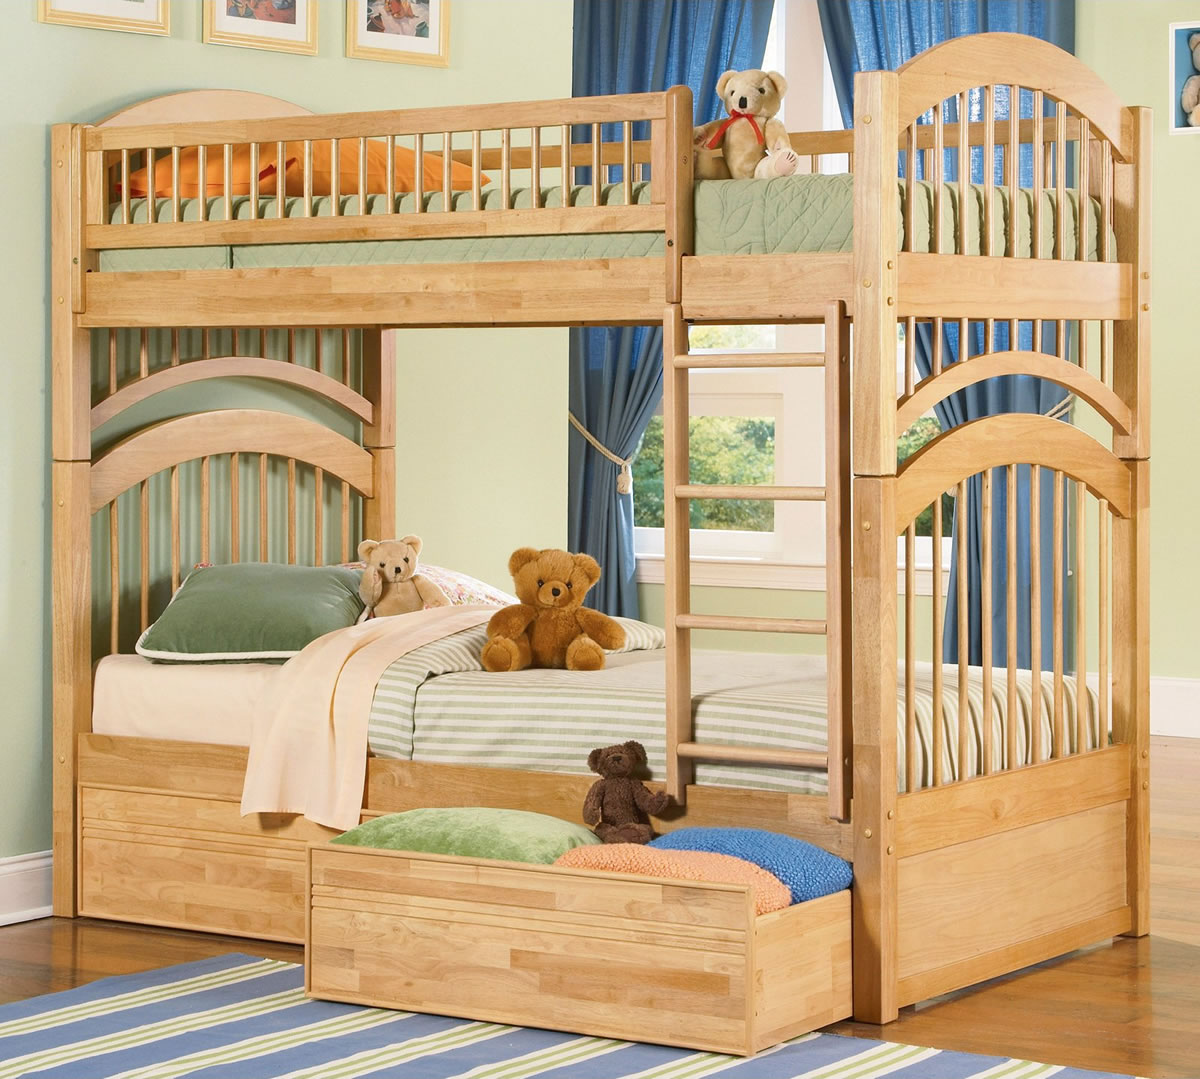 Pics of bunk bed colors and patterns homesfeed for Wooden bunk beds